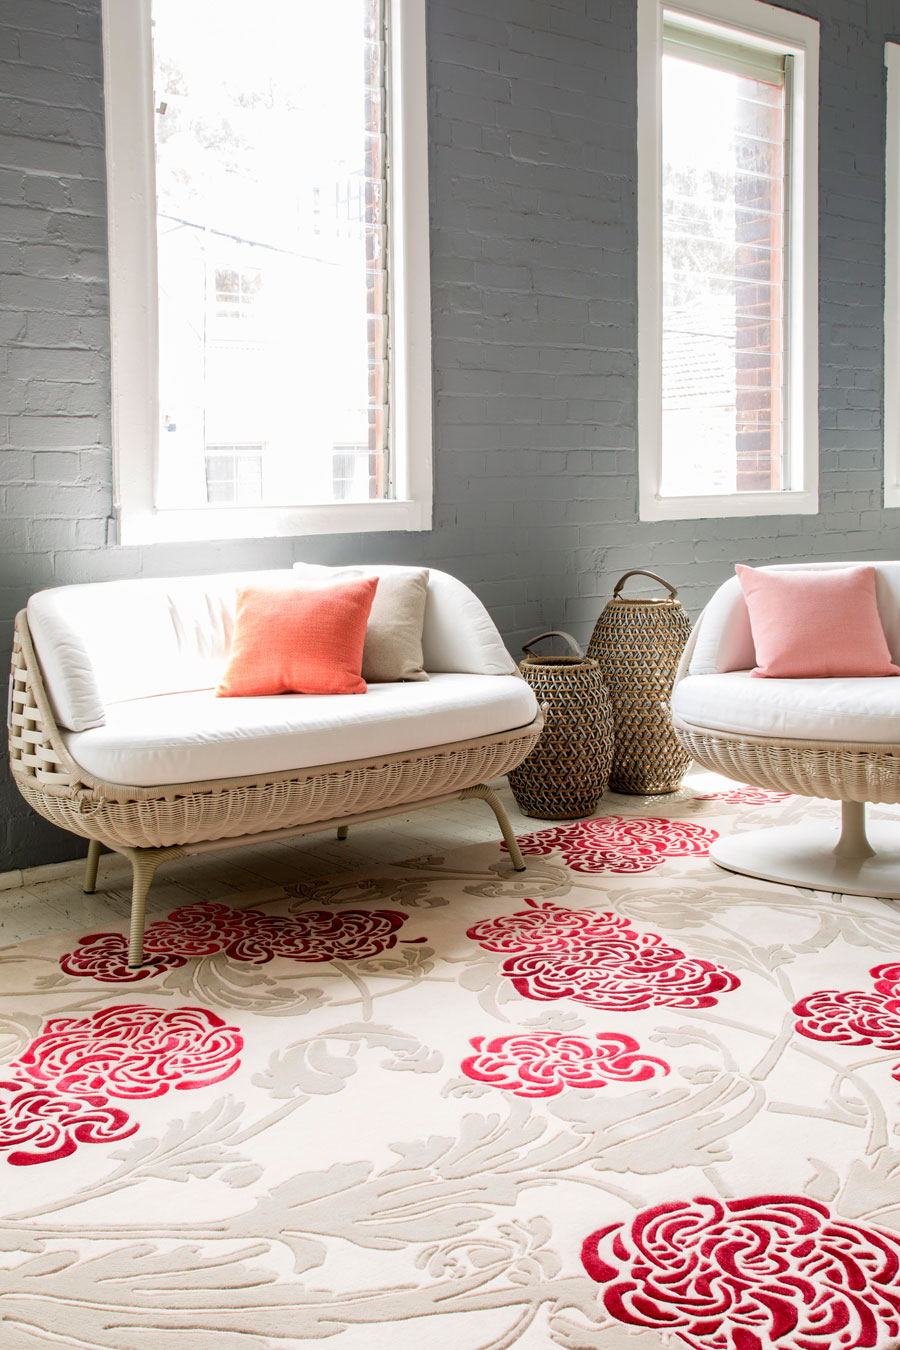 Living room image of floral Chrysanthemum rug in pink and red colour